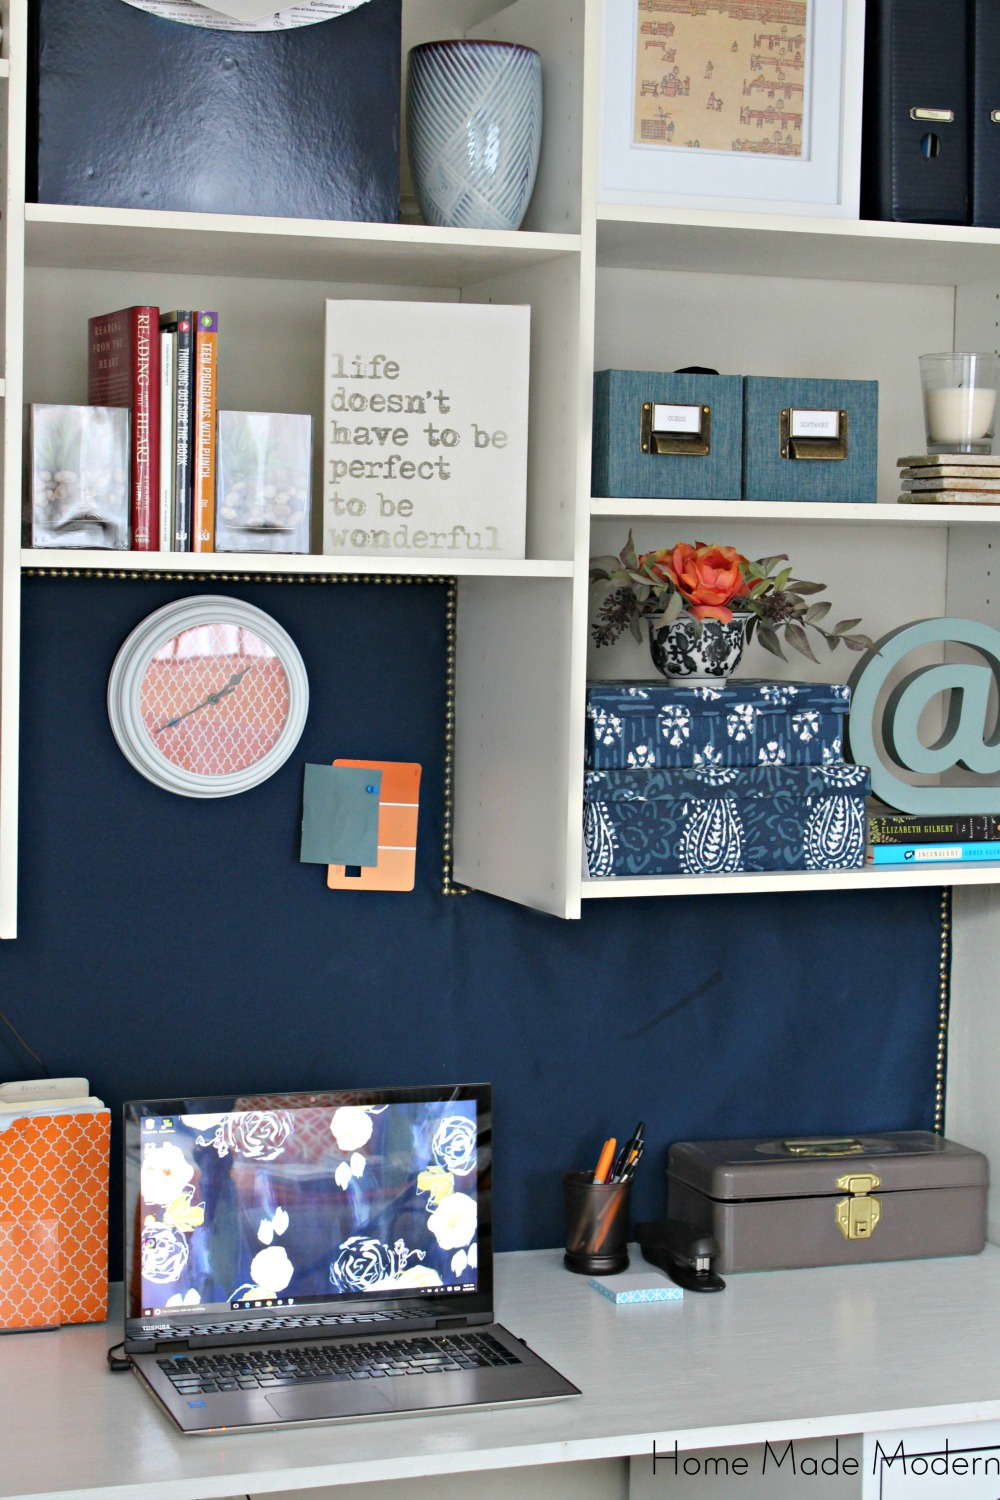 Diy cork board home made modern for Diy fabric bulletin board ideas